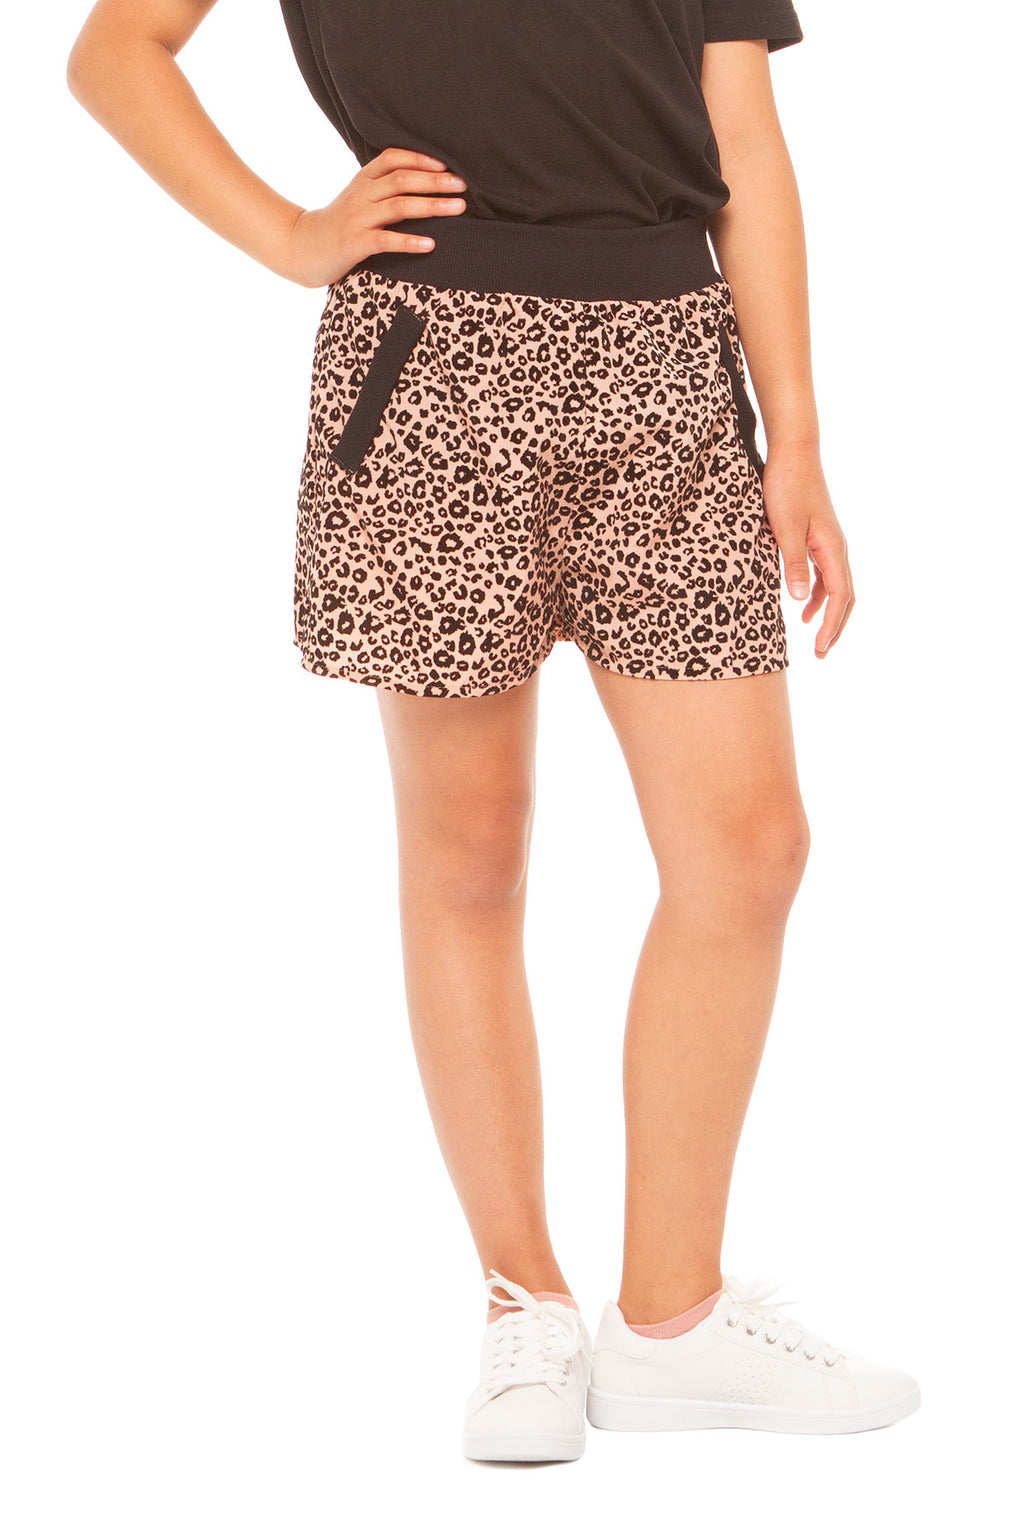 Imogen Girls Shorts